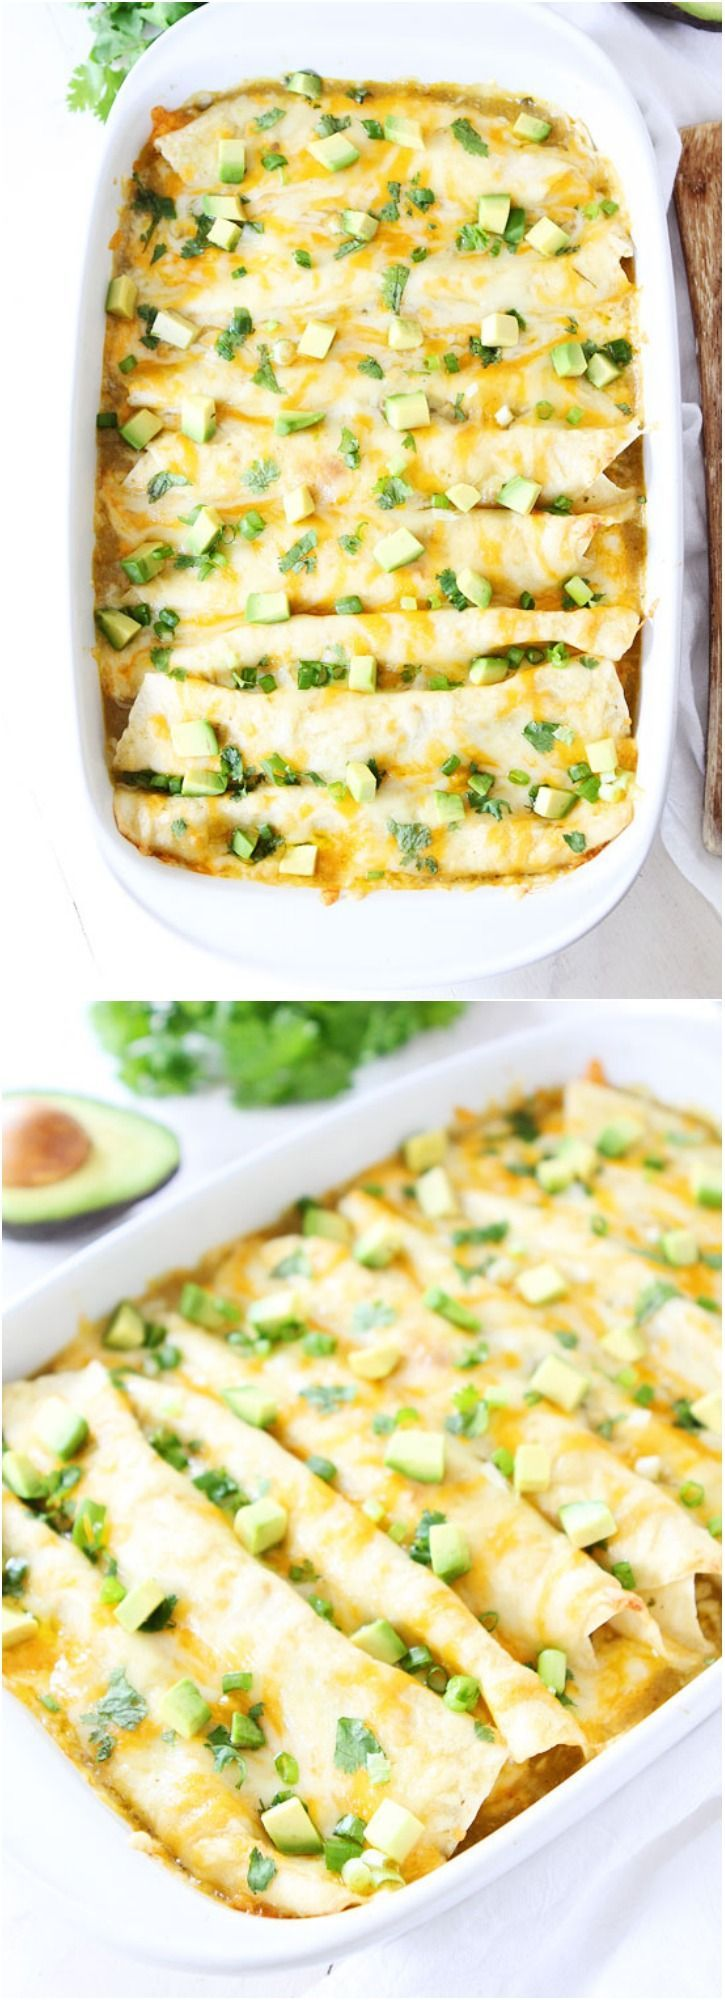 Creamy Spinach and Cheese Green Chile Enchilada Recipe on twopeasandtheirpod.com An easy weeknight meal and they freeze well too!